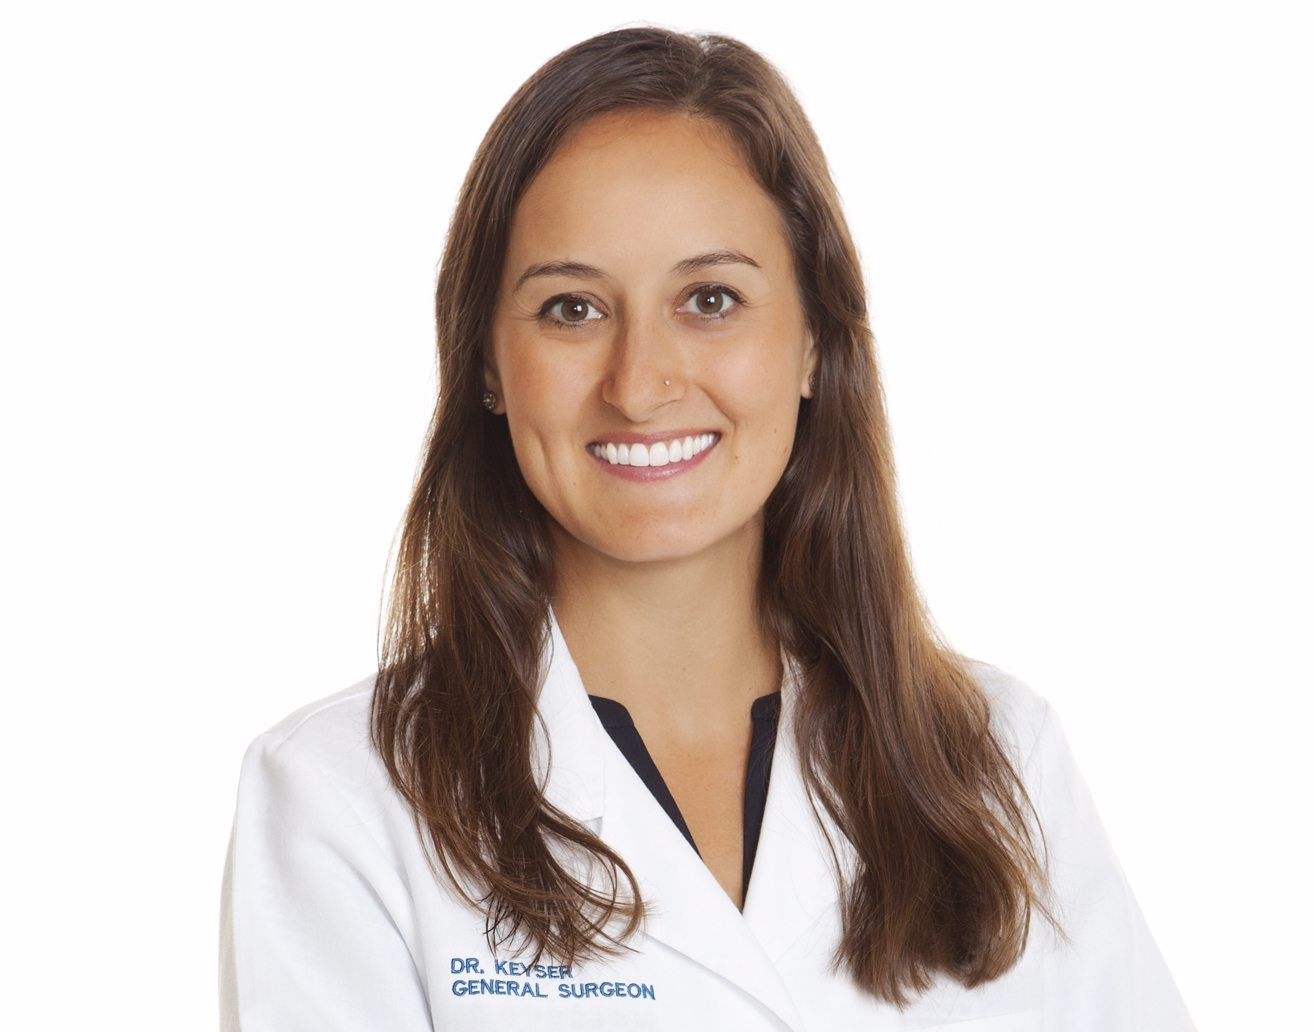 Daria Lin Keyser, DO, General Surgeon, Joins the Surgical Specialists of Evangelical